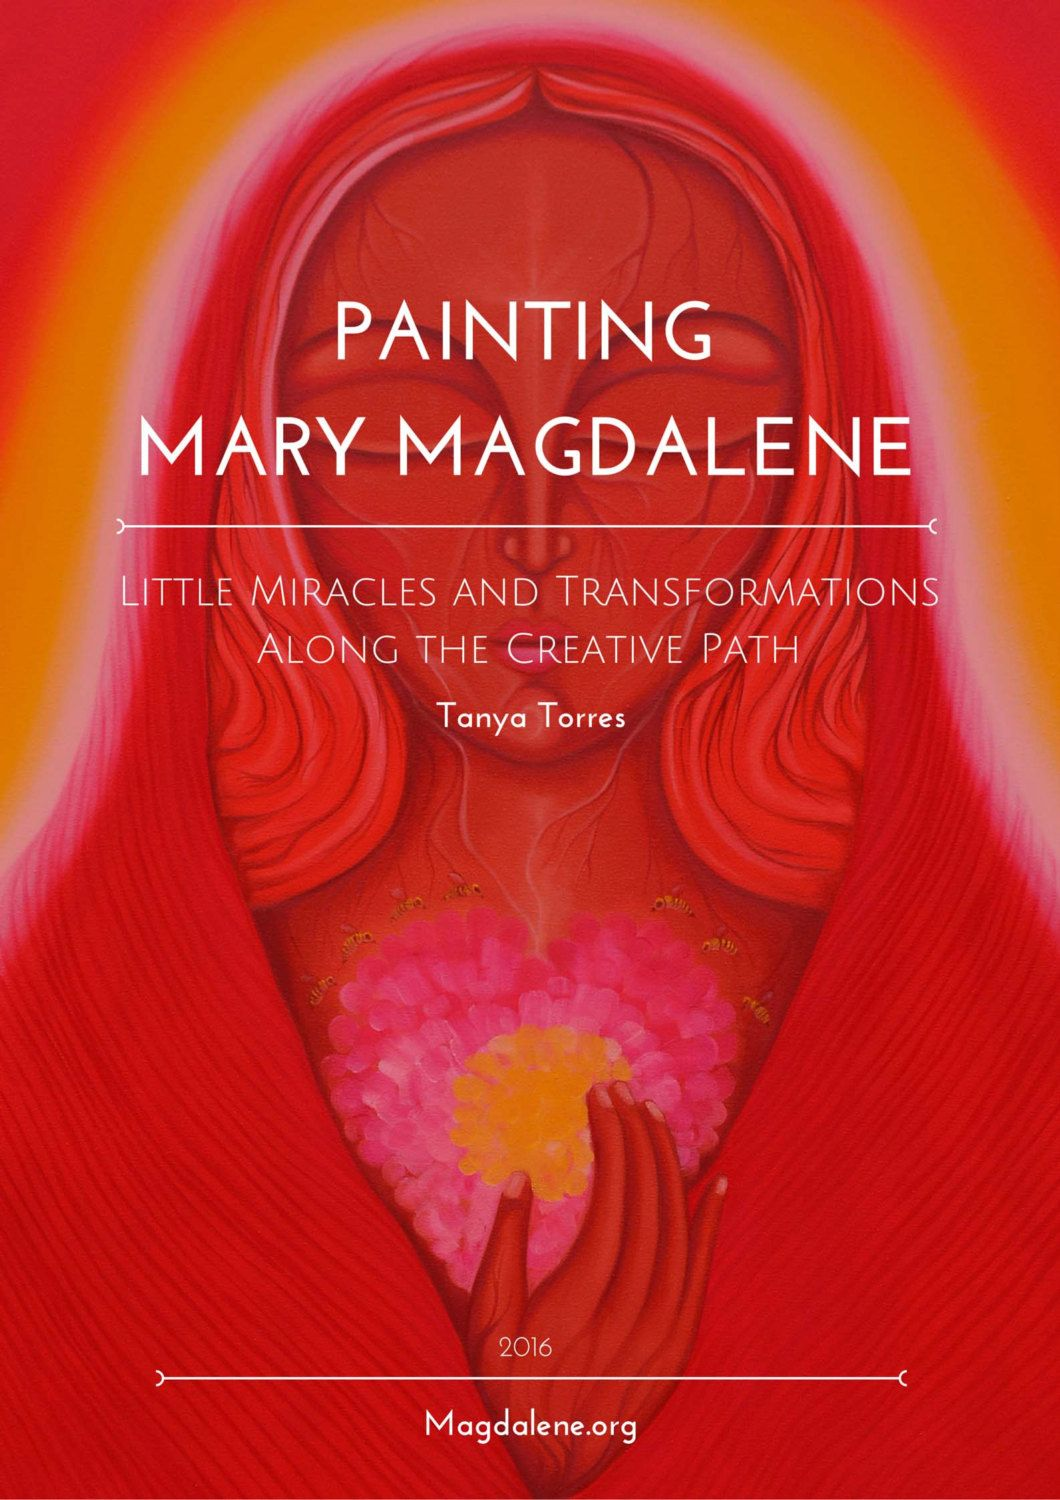 Painting Mary Magdalene Inspirational Book Etsy Mary Magdalene Gospel Of Mary Inspirational Books